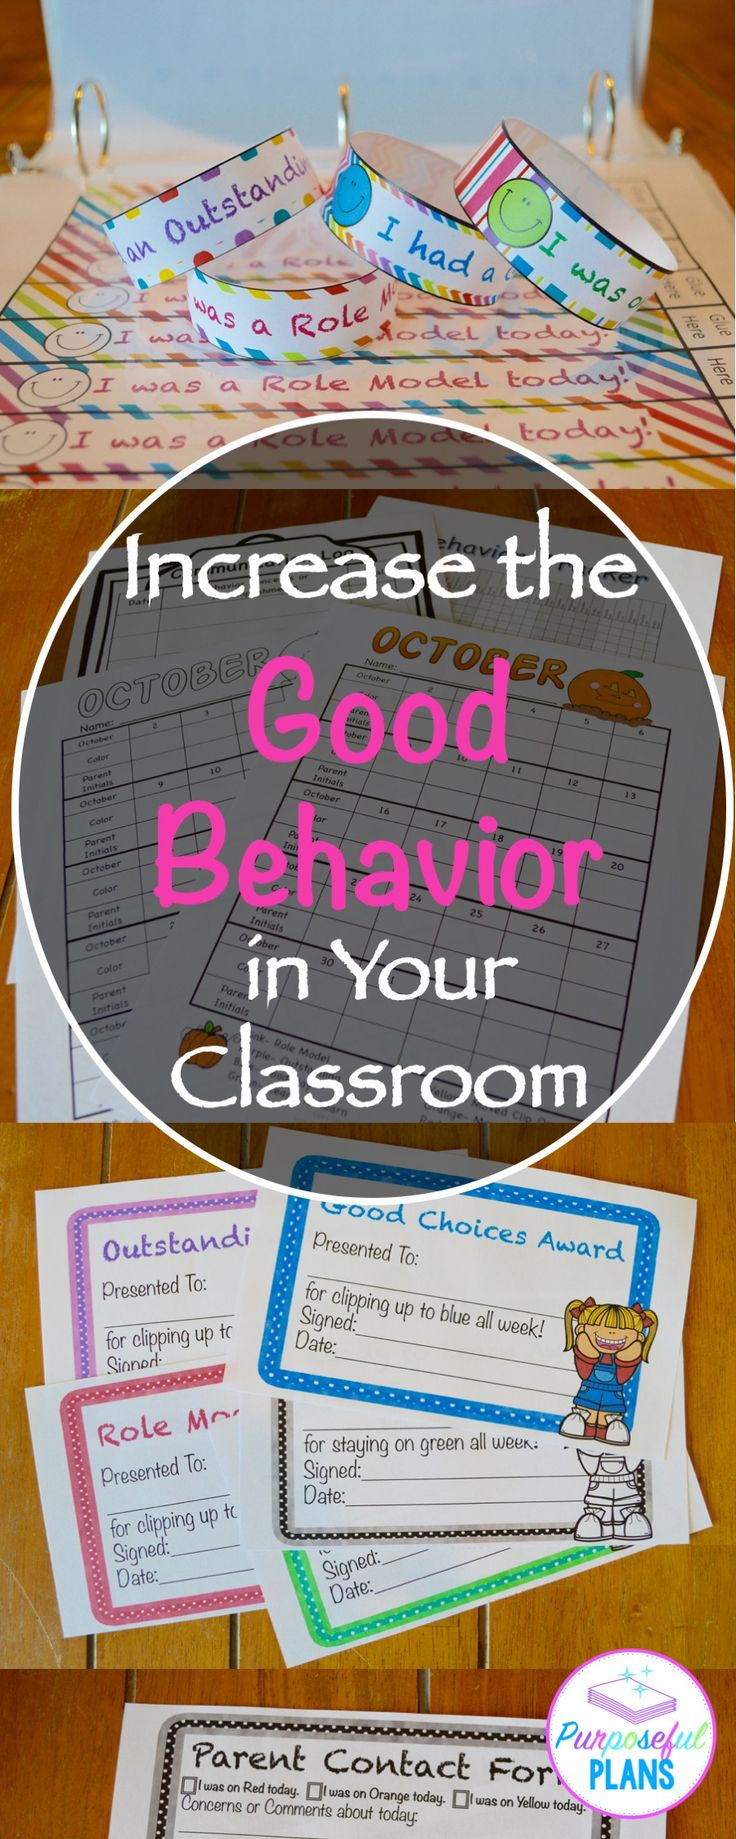 Increase the Good Behavior in Your Classroom